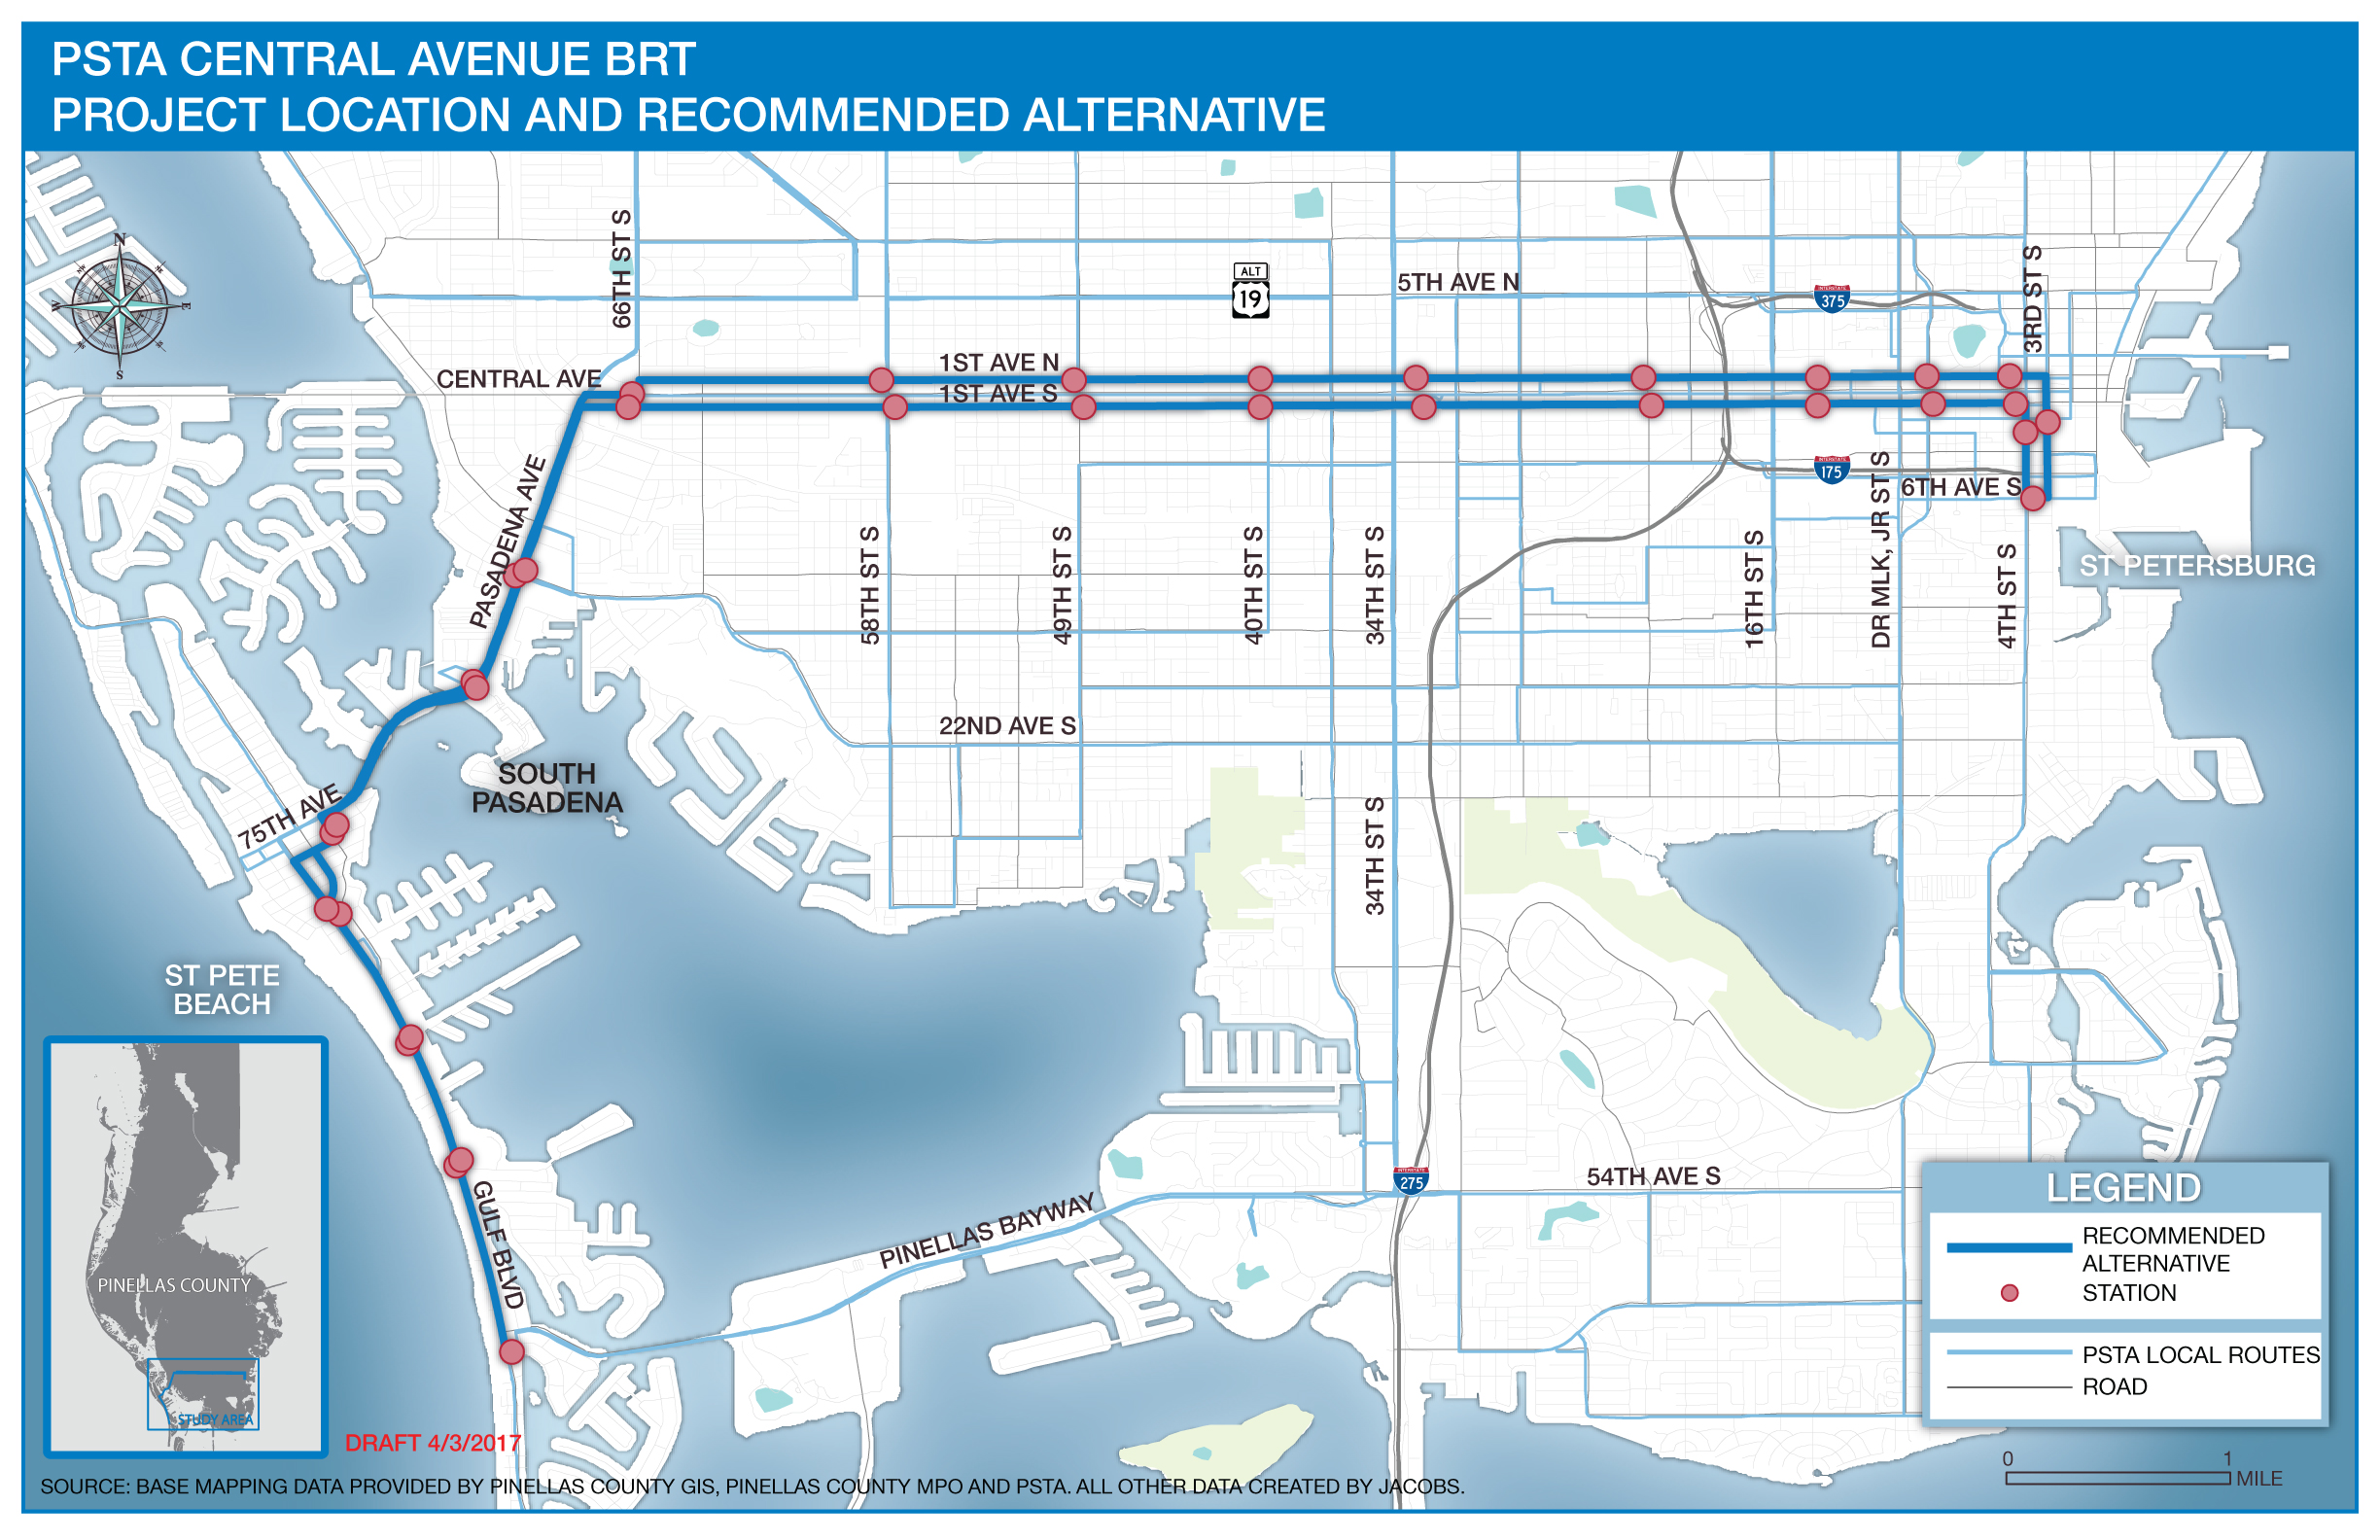 PSTA Central Avenue BRT: Project Location and Recommended Alternative Map